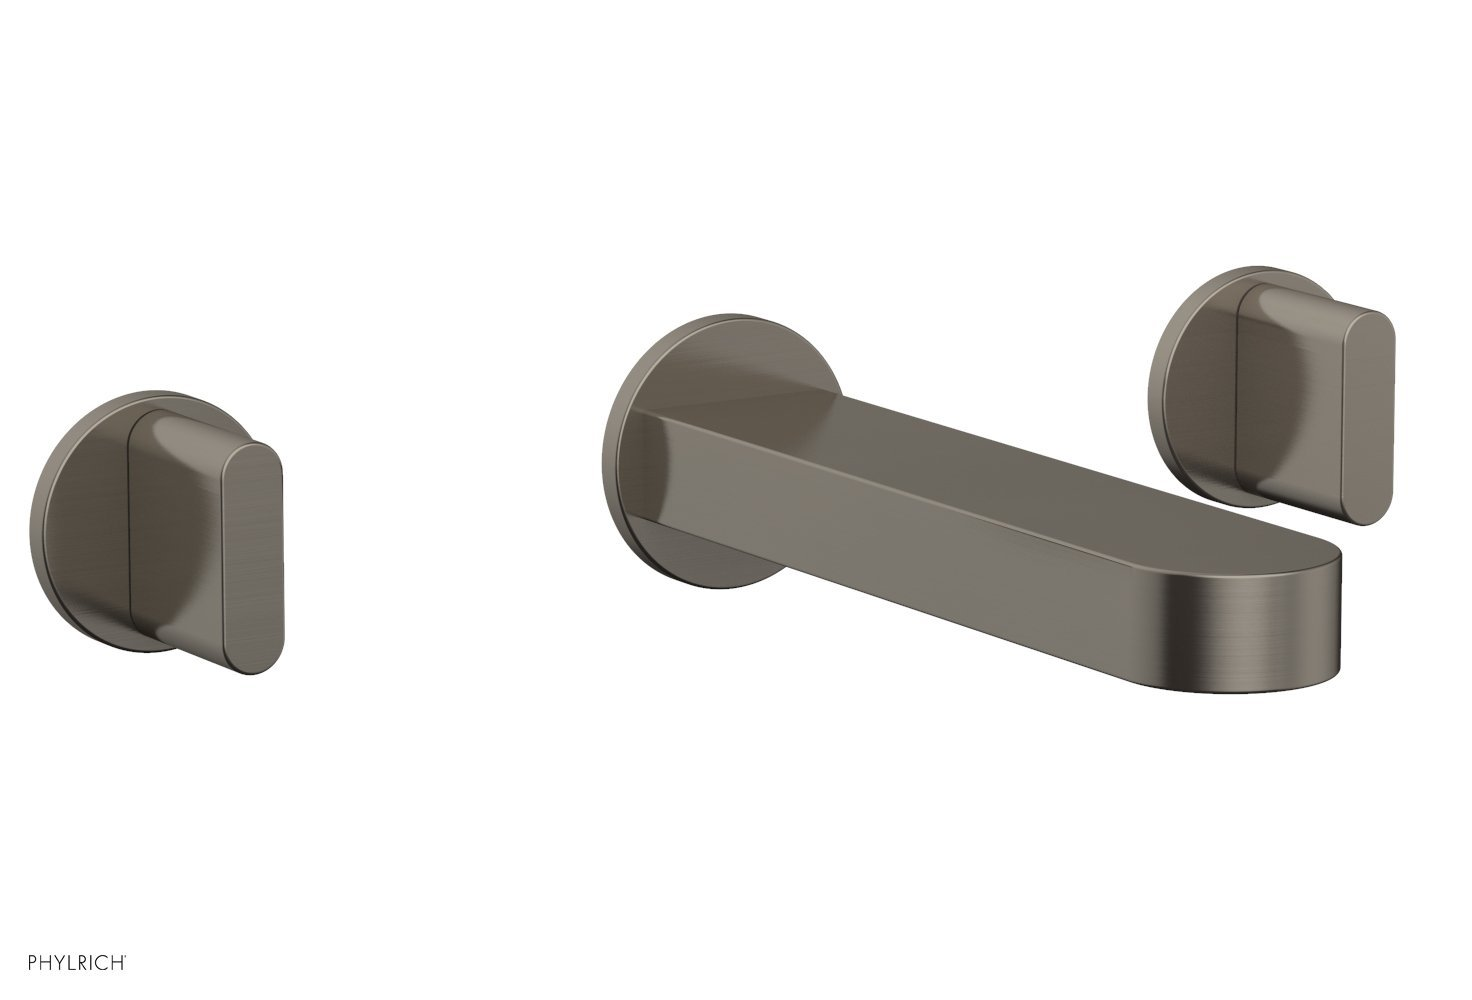 Phylrich 183-11-15A ROND Wall Lavatory Set - Blade Handles - Pewter